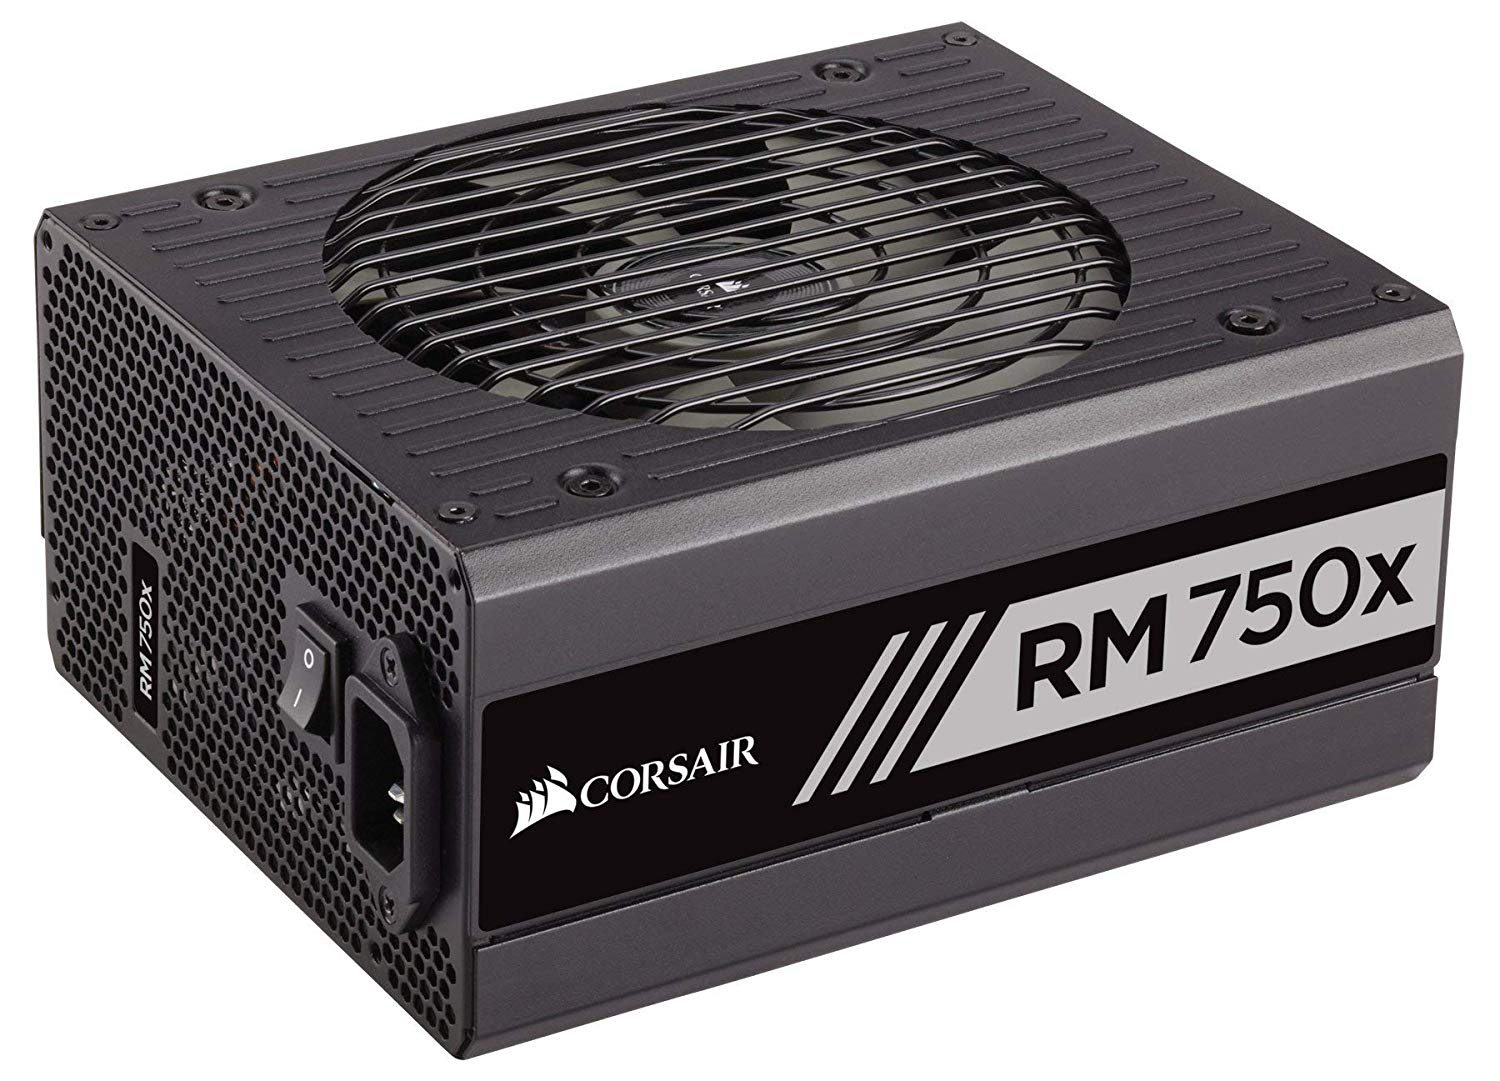 7 Power Supply - Best $1500 PC Build 2019